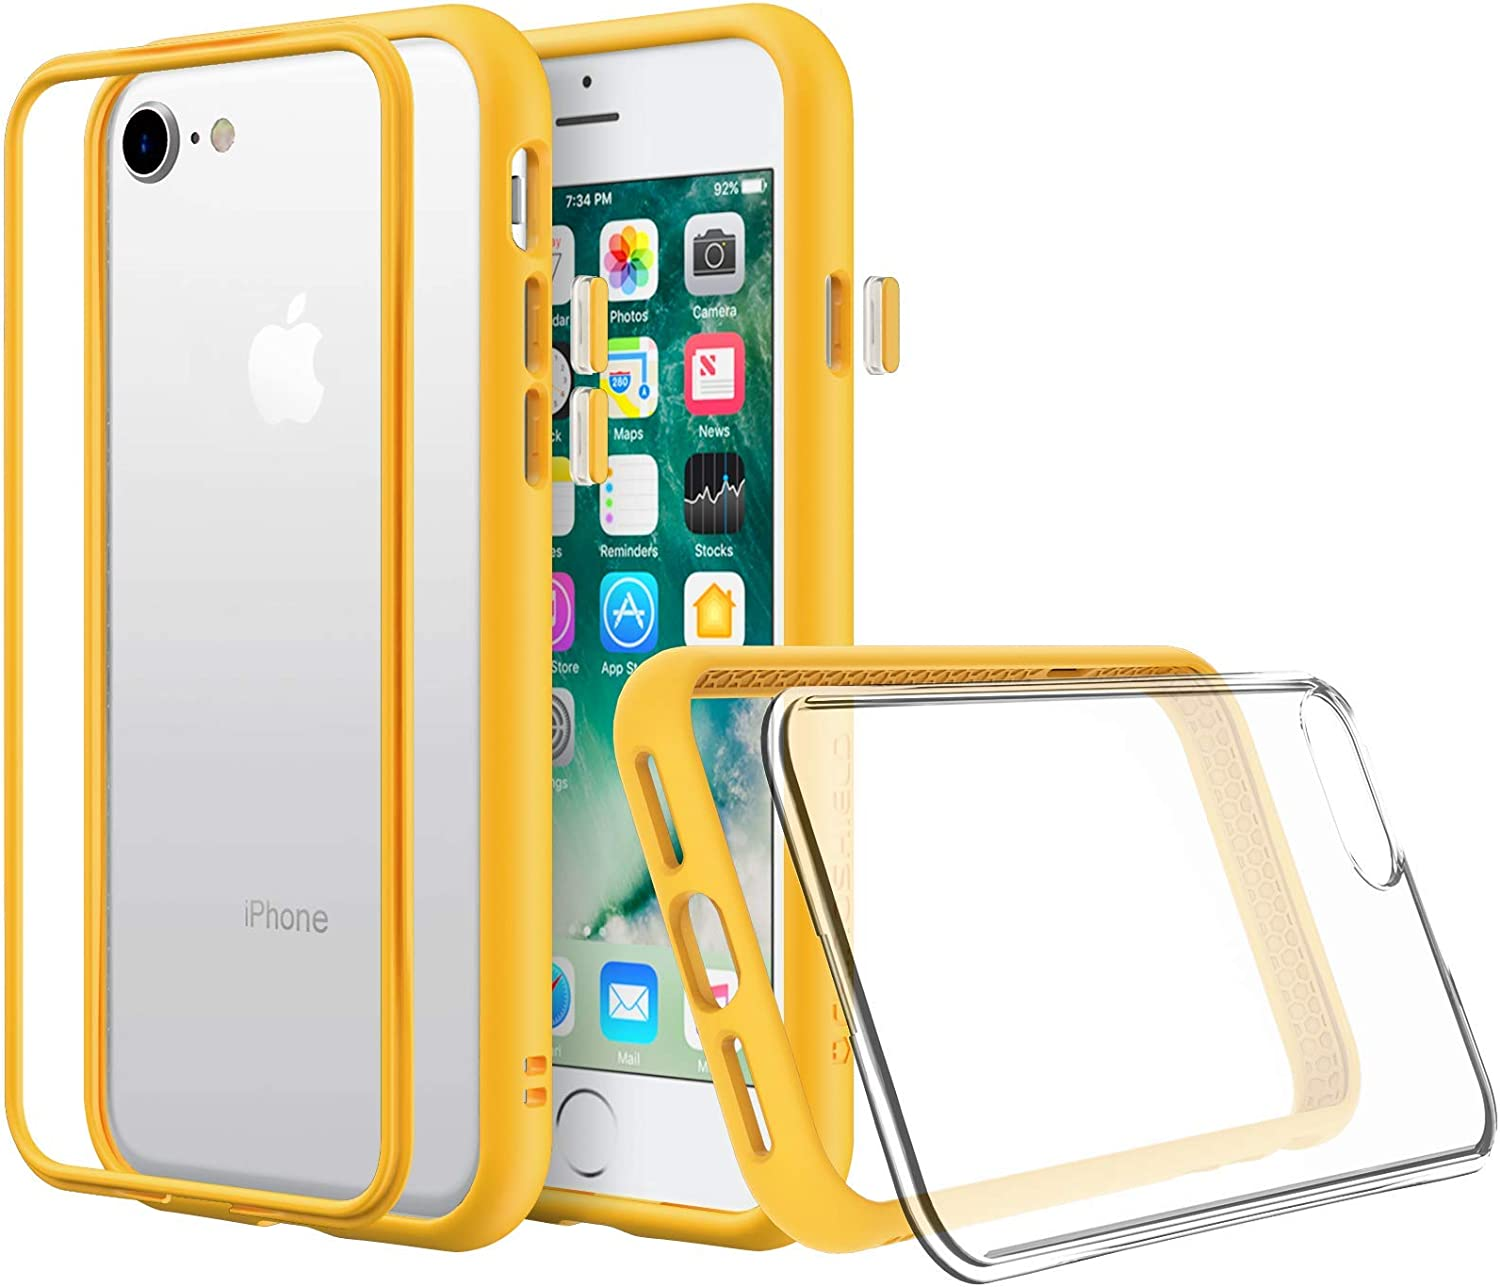 Amazon Com Rhinoshield Modular Case Compatible With Iphone Xs Max Mod Nx Customizable Shock Absorbent Heavy Duty Protective Cover Shockproof Yellow Bumper With Clear Back